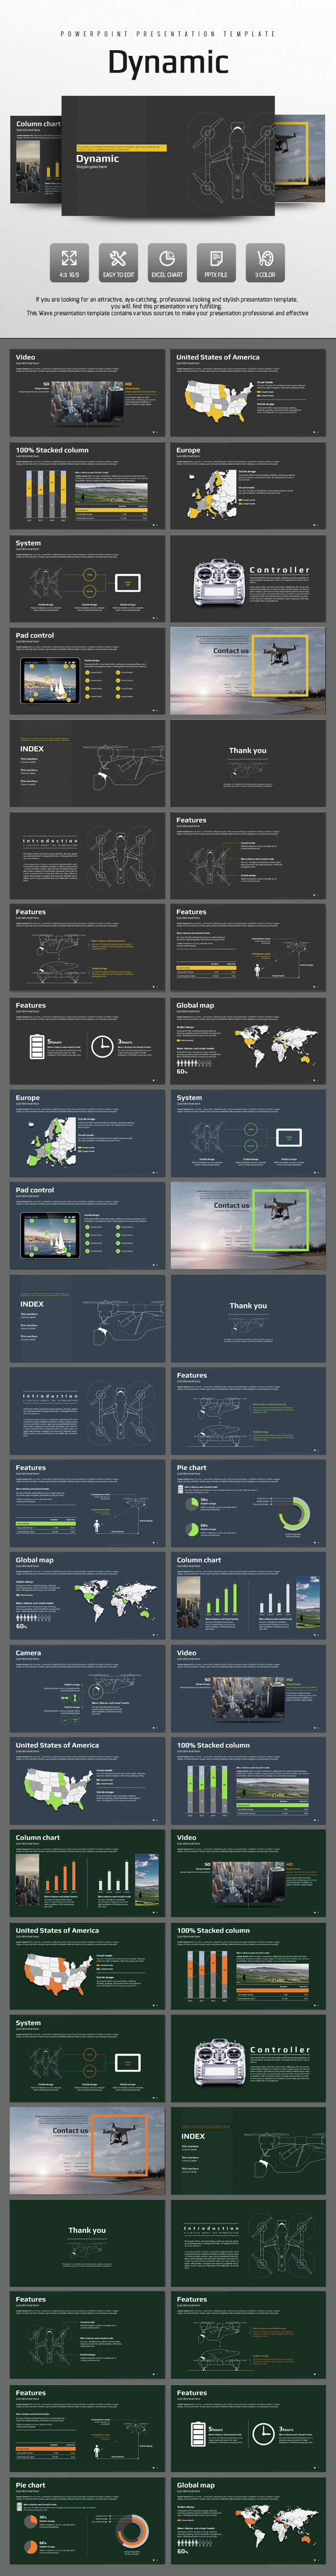 Dynamic - PowerPoint Templates Presentation Templates